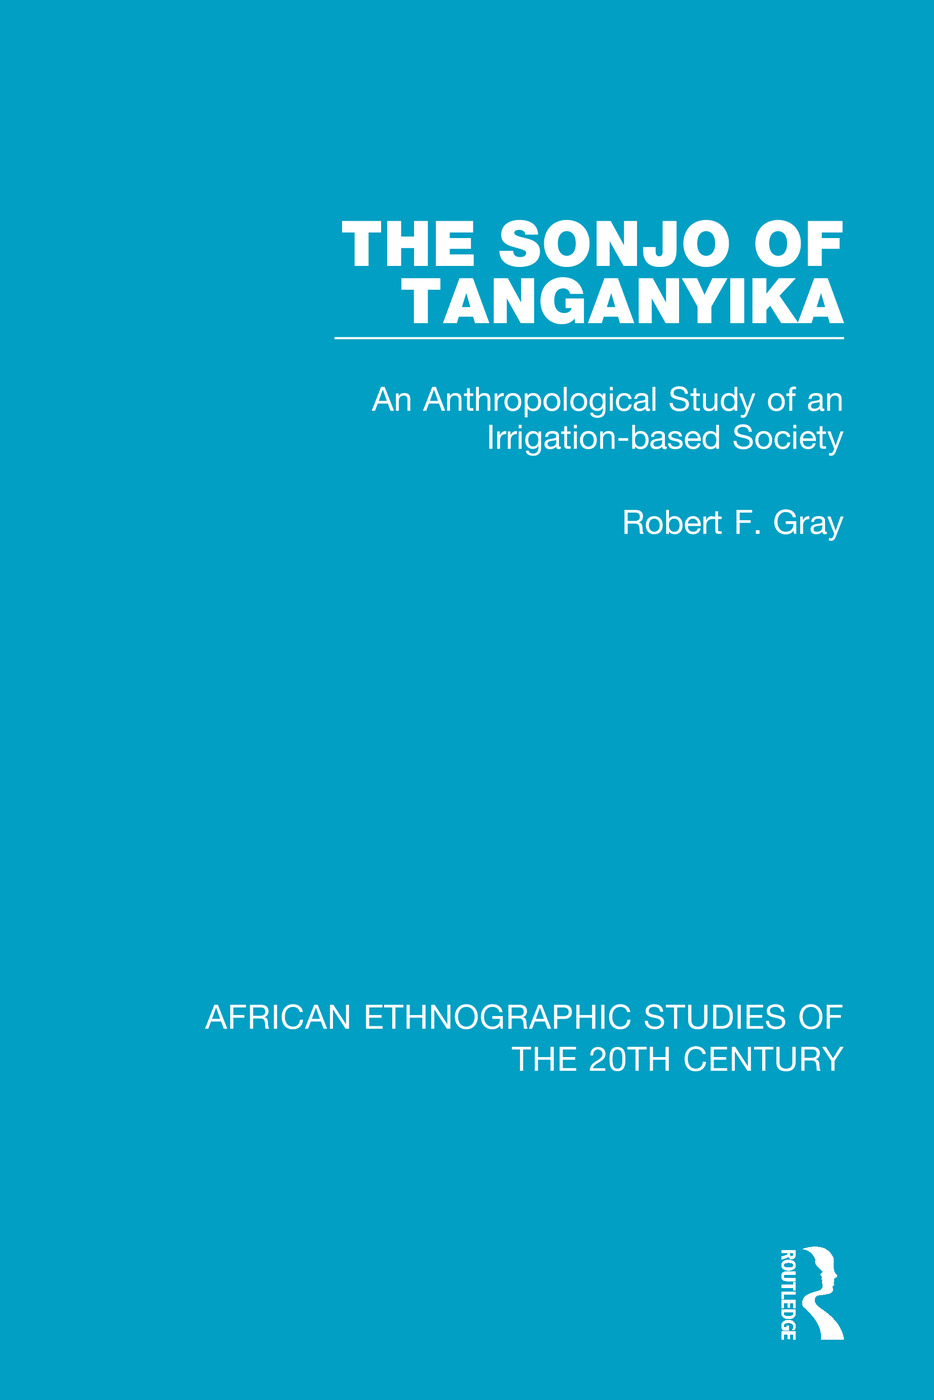 The Sonjo of Tanganyika